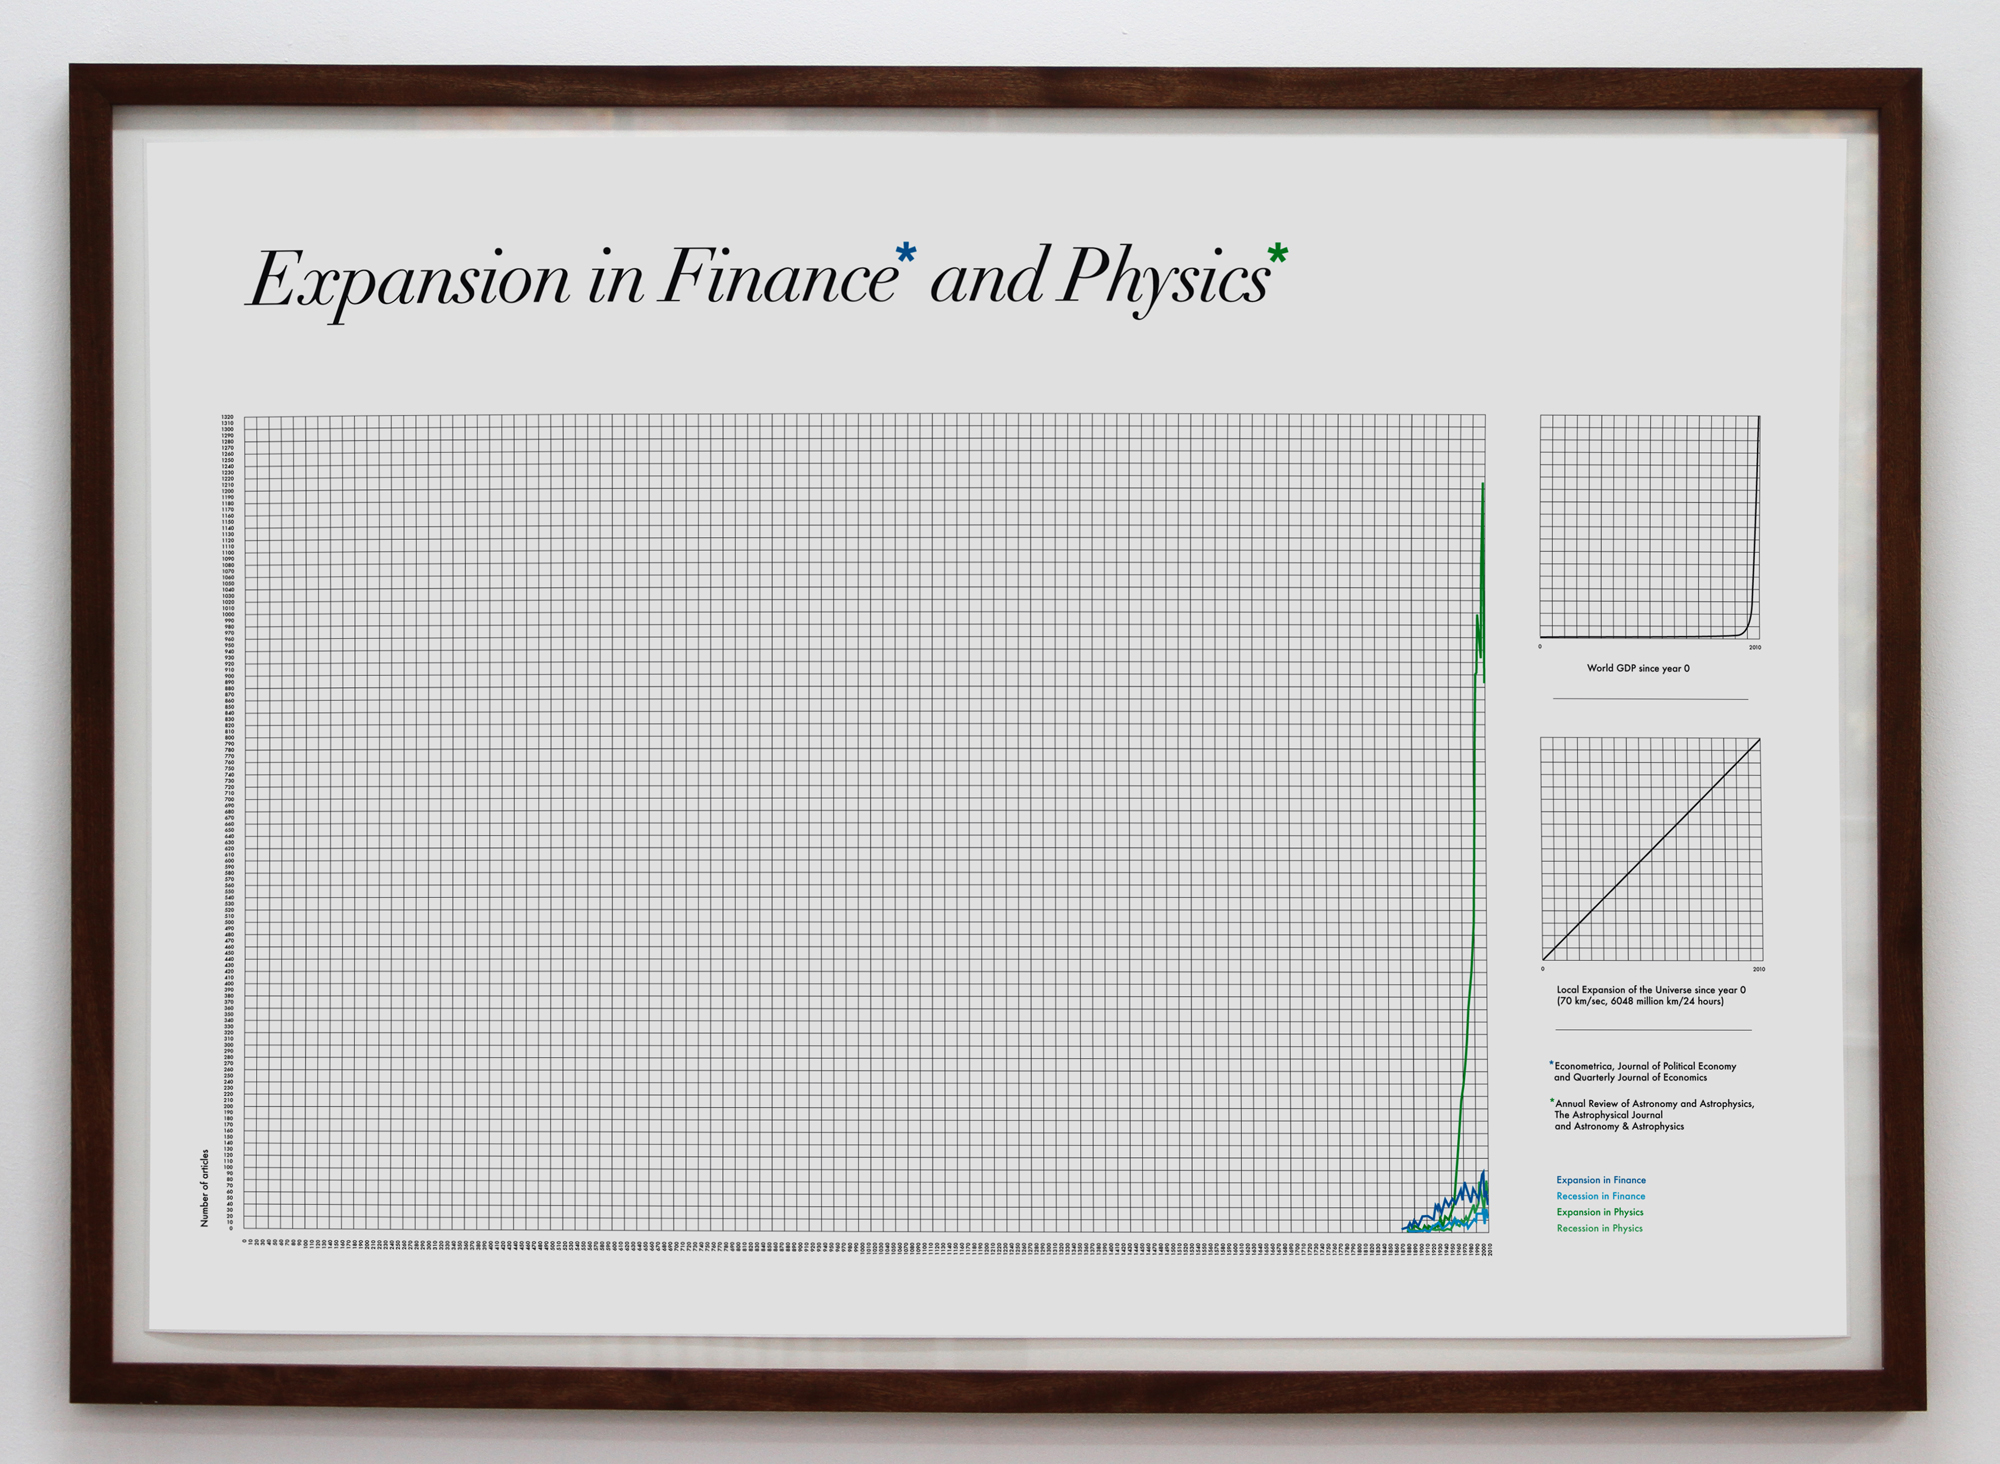 Toril Johannessen,  Expansion in Finance and Physics,  2010. Digital Print, 105 x 145 cm. Courtesy: the artist and OSL Contemporary, Oslo.